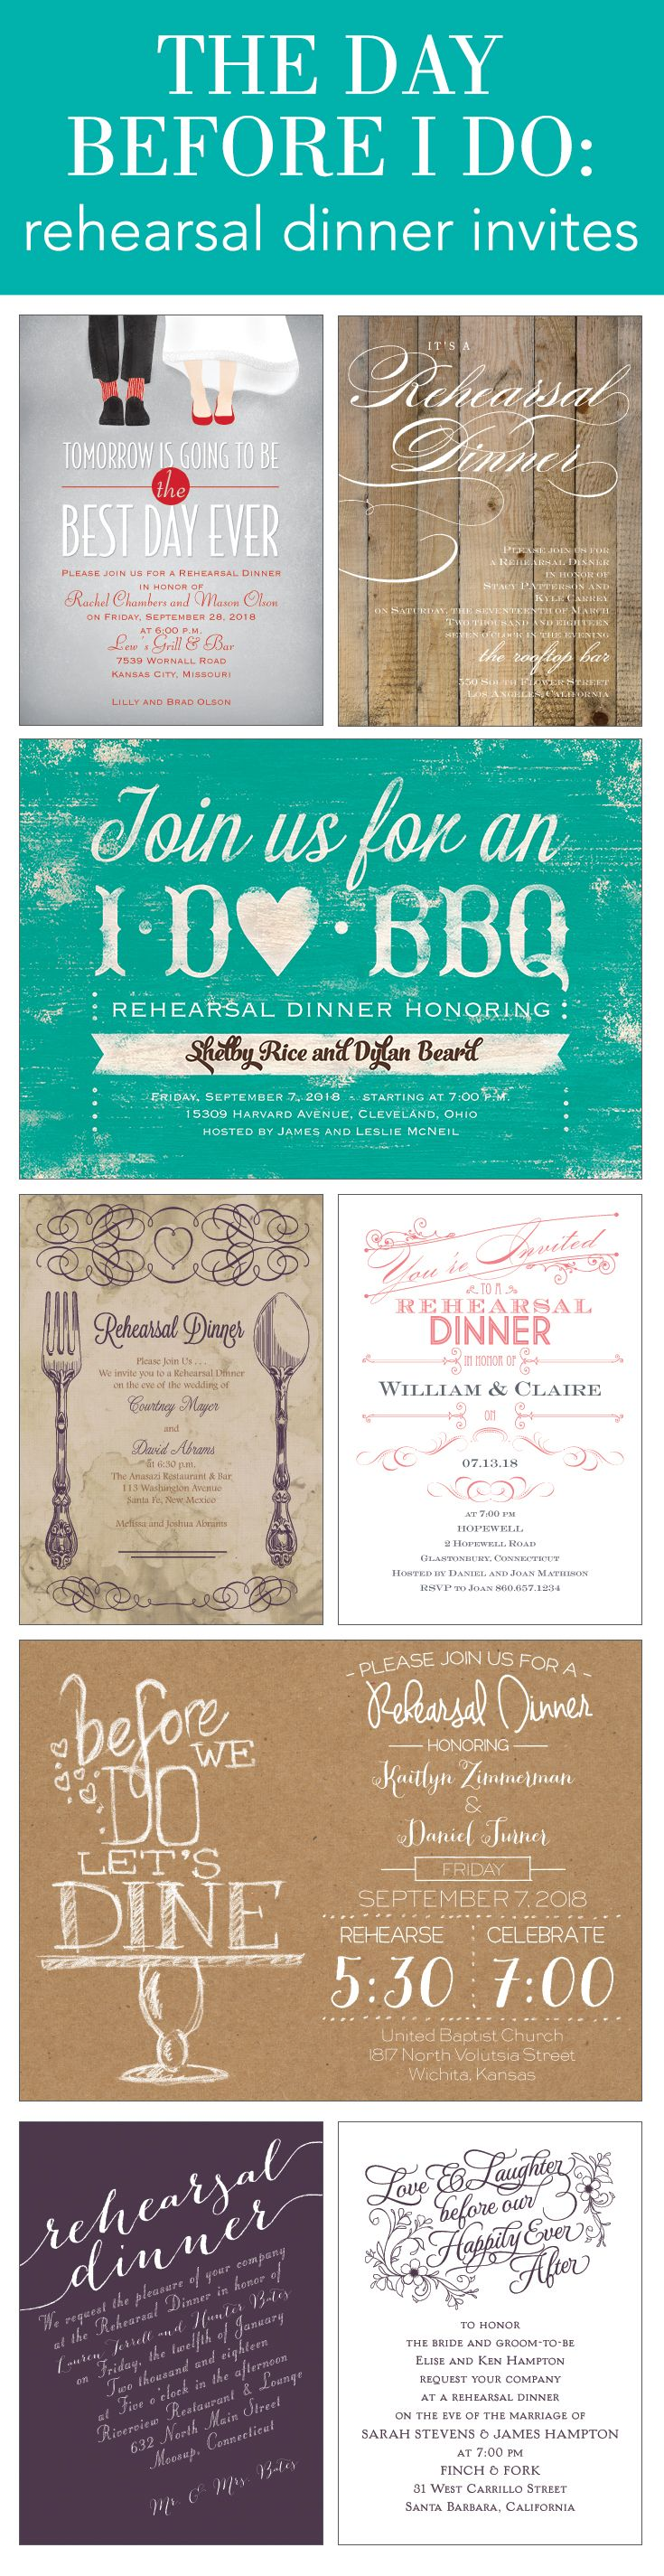 50 Best Rehearsal Dinner Images By Invitations By Dawn On Pinterest